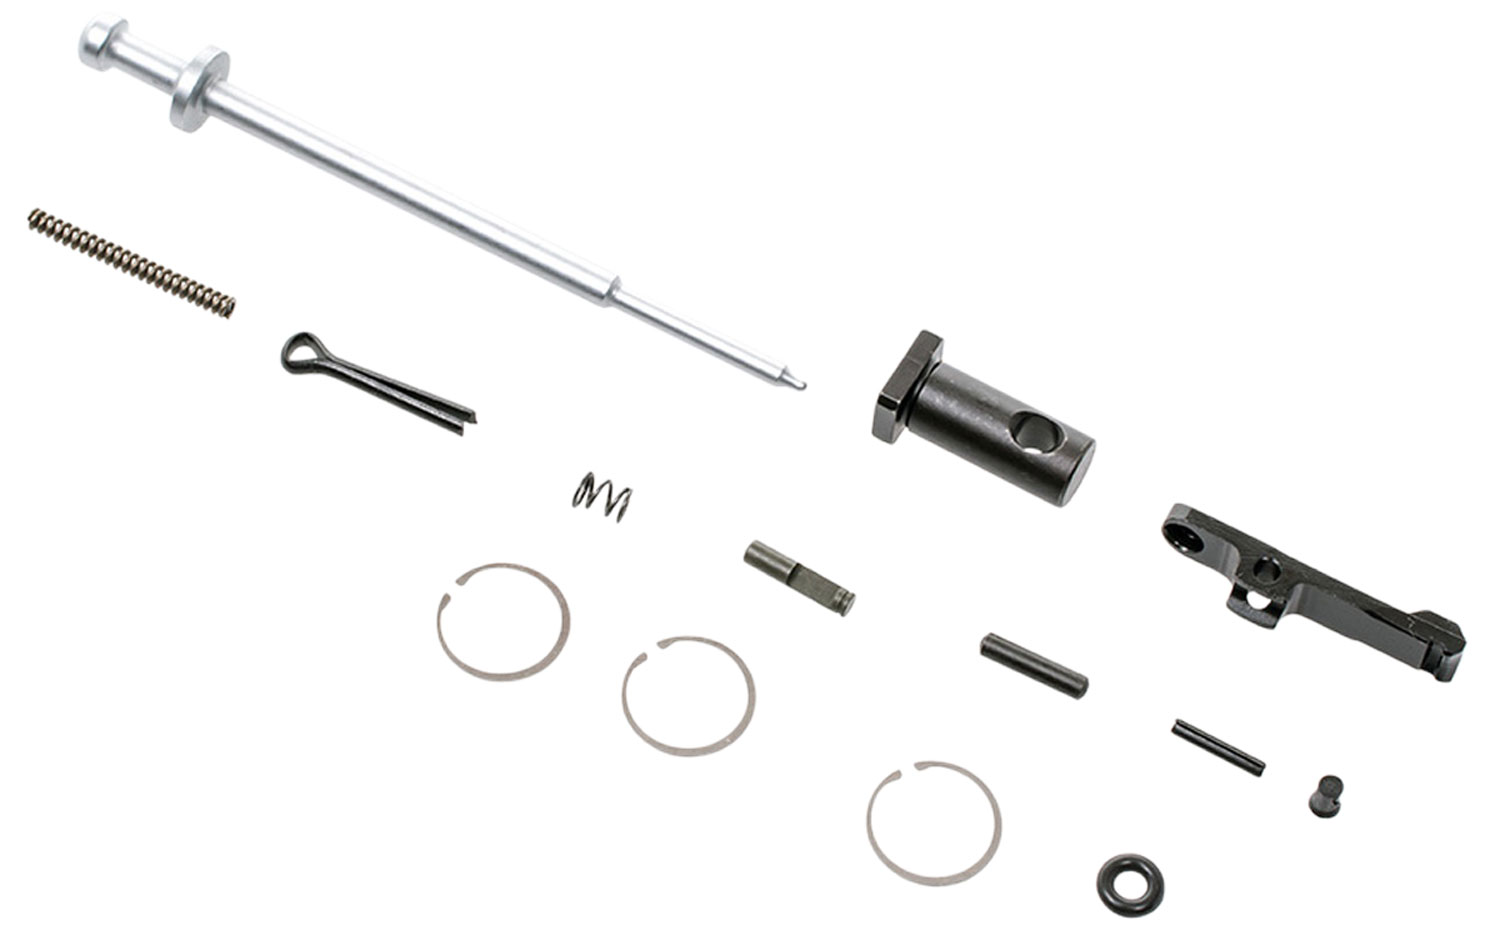 Cmmg Ar 15 Bolt Rehab Kit Ar Style 223 Various Black